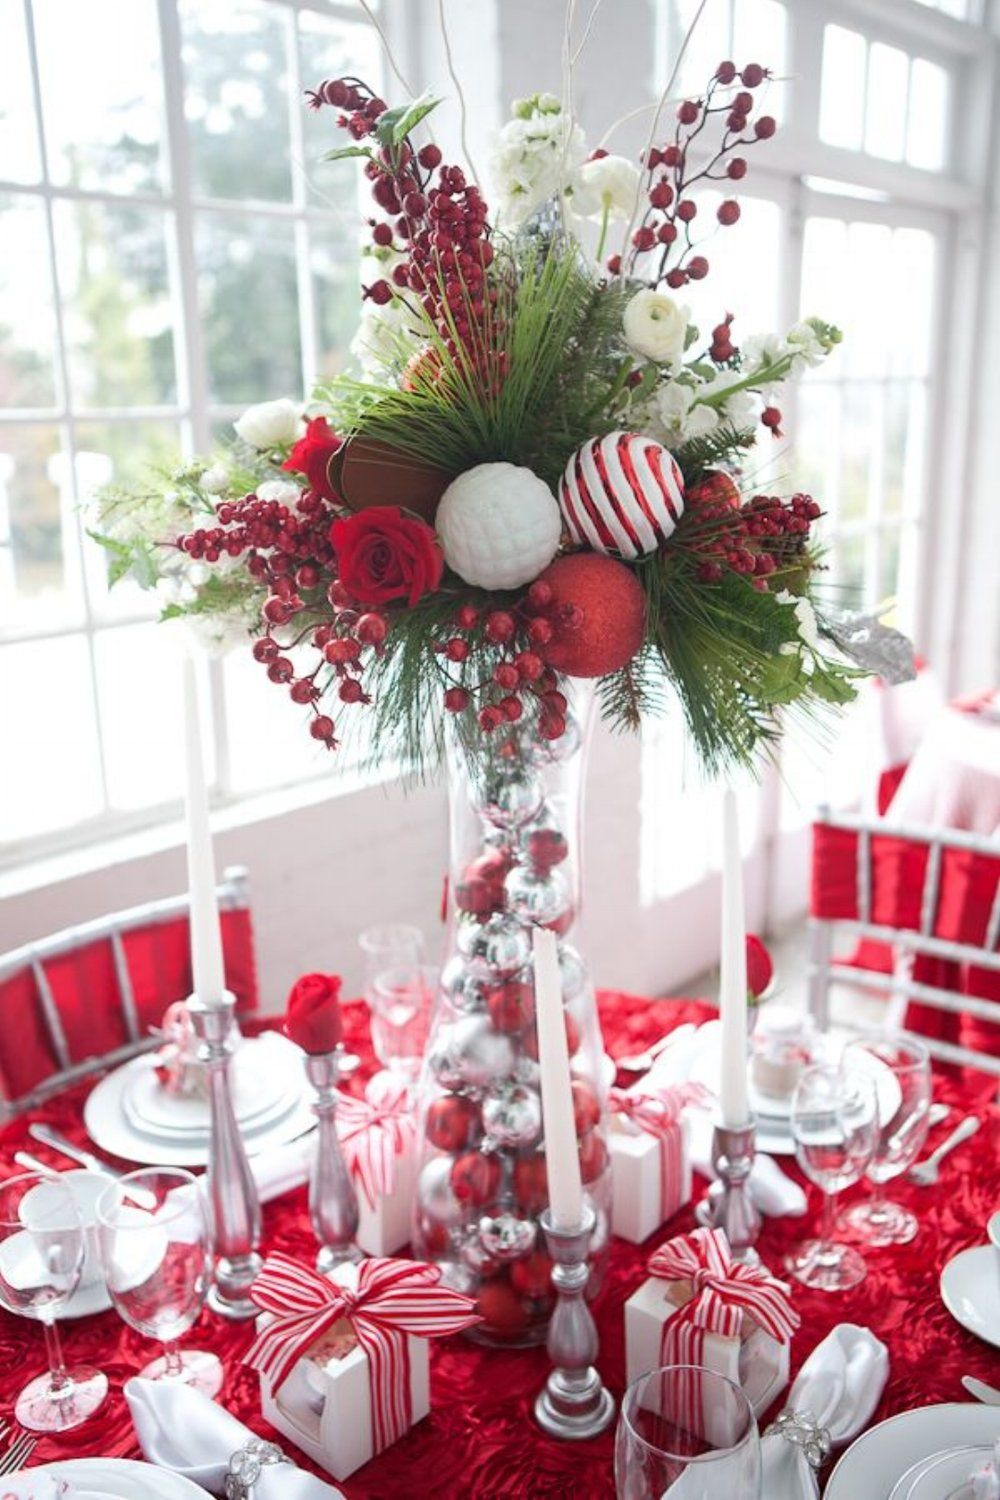 Charming Holiday Table Decorating Ideas Part - 1: 34 Gorgeous Christmas Tablescapes And Centerpiece Ideas